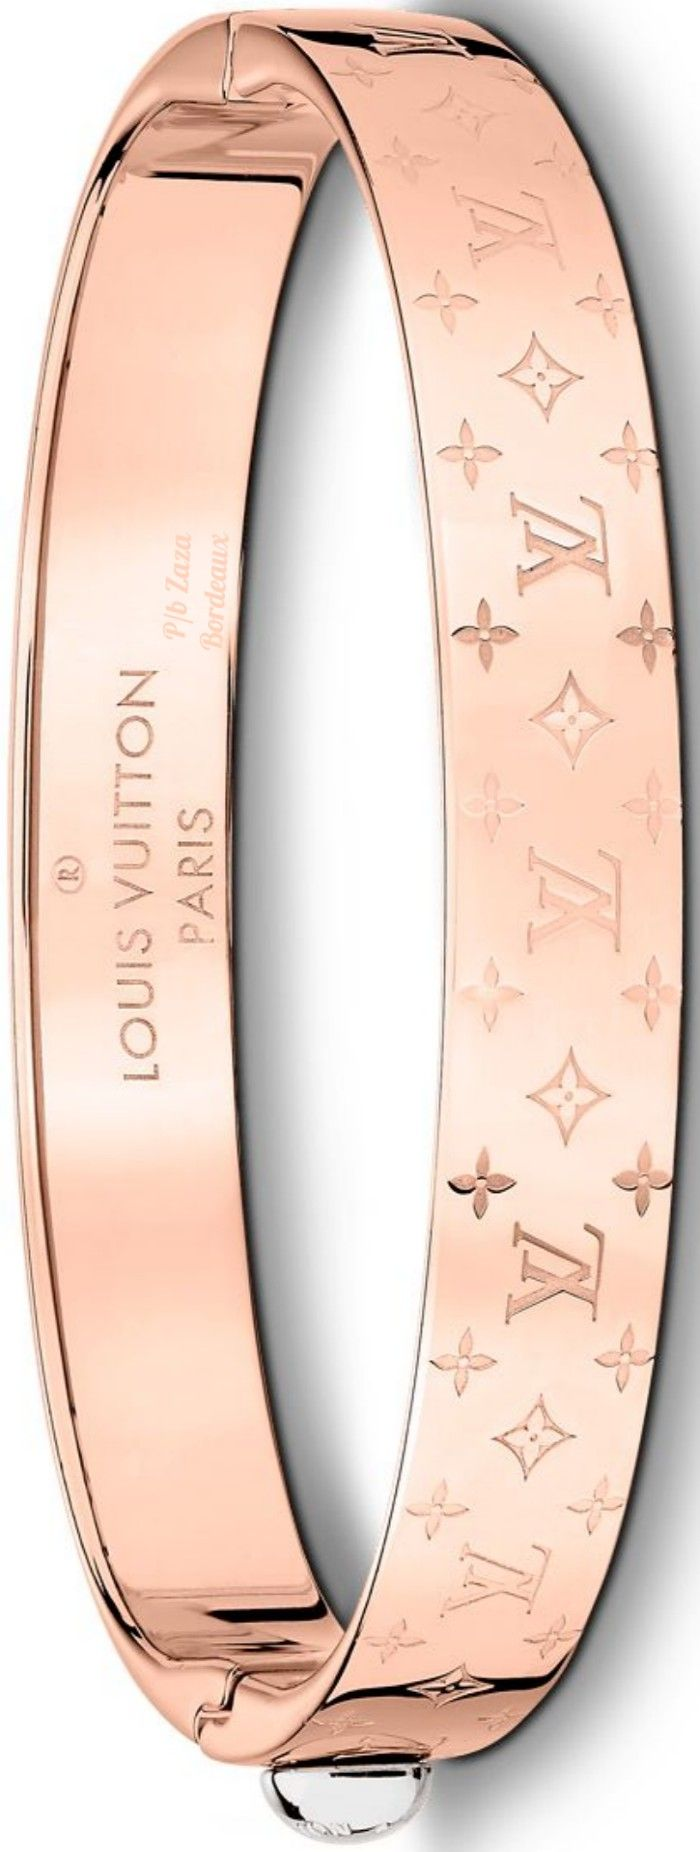 Louis vuitton rose gold louis vuitton pinterest louis vuitton